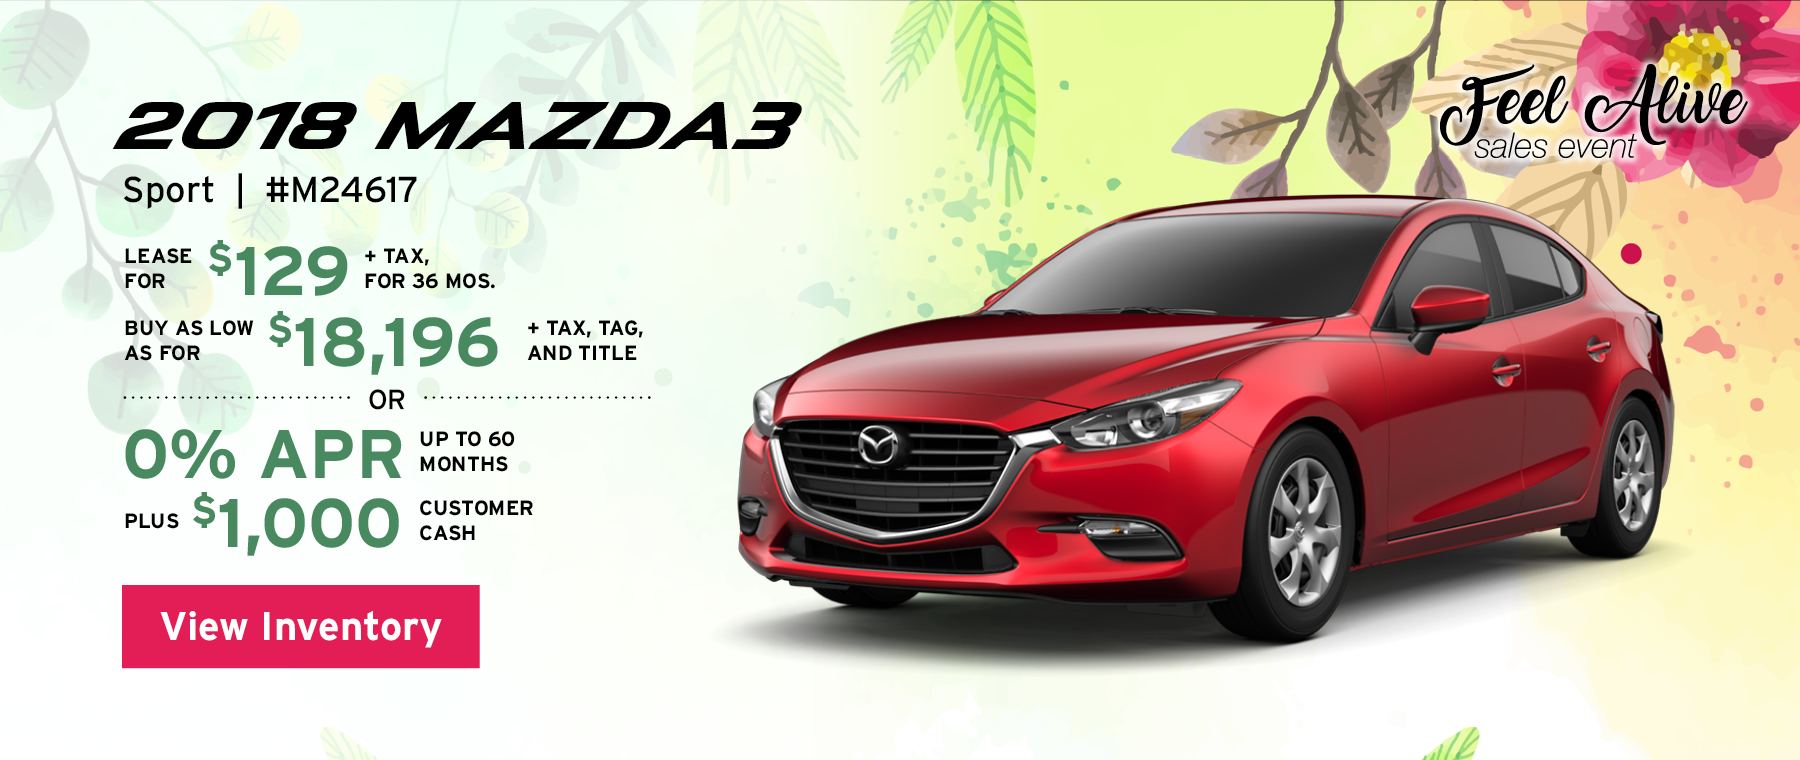 Lease the 2018 Mazda3 Sport stock#M24617 for $129 for 36 months, plus tax. Buy as low for $18,196, plus tax, tag, and title, or 0% APR up to 60 months, plus $1,000 customer cash. View inventory.